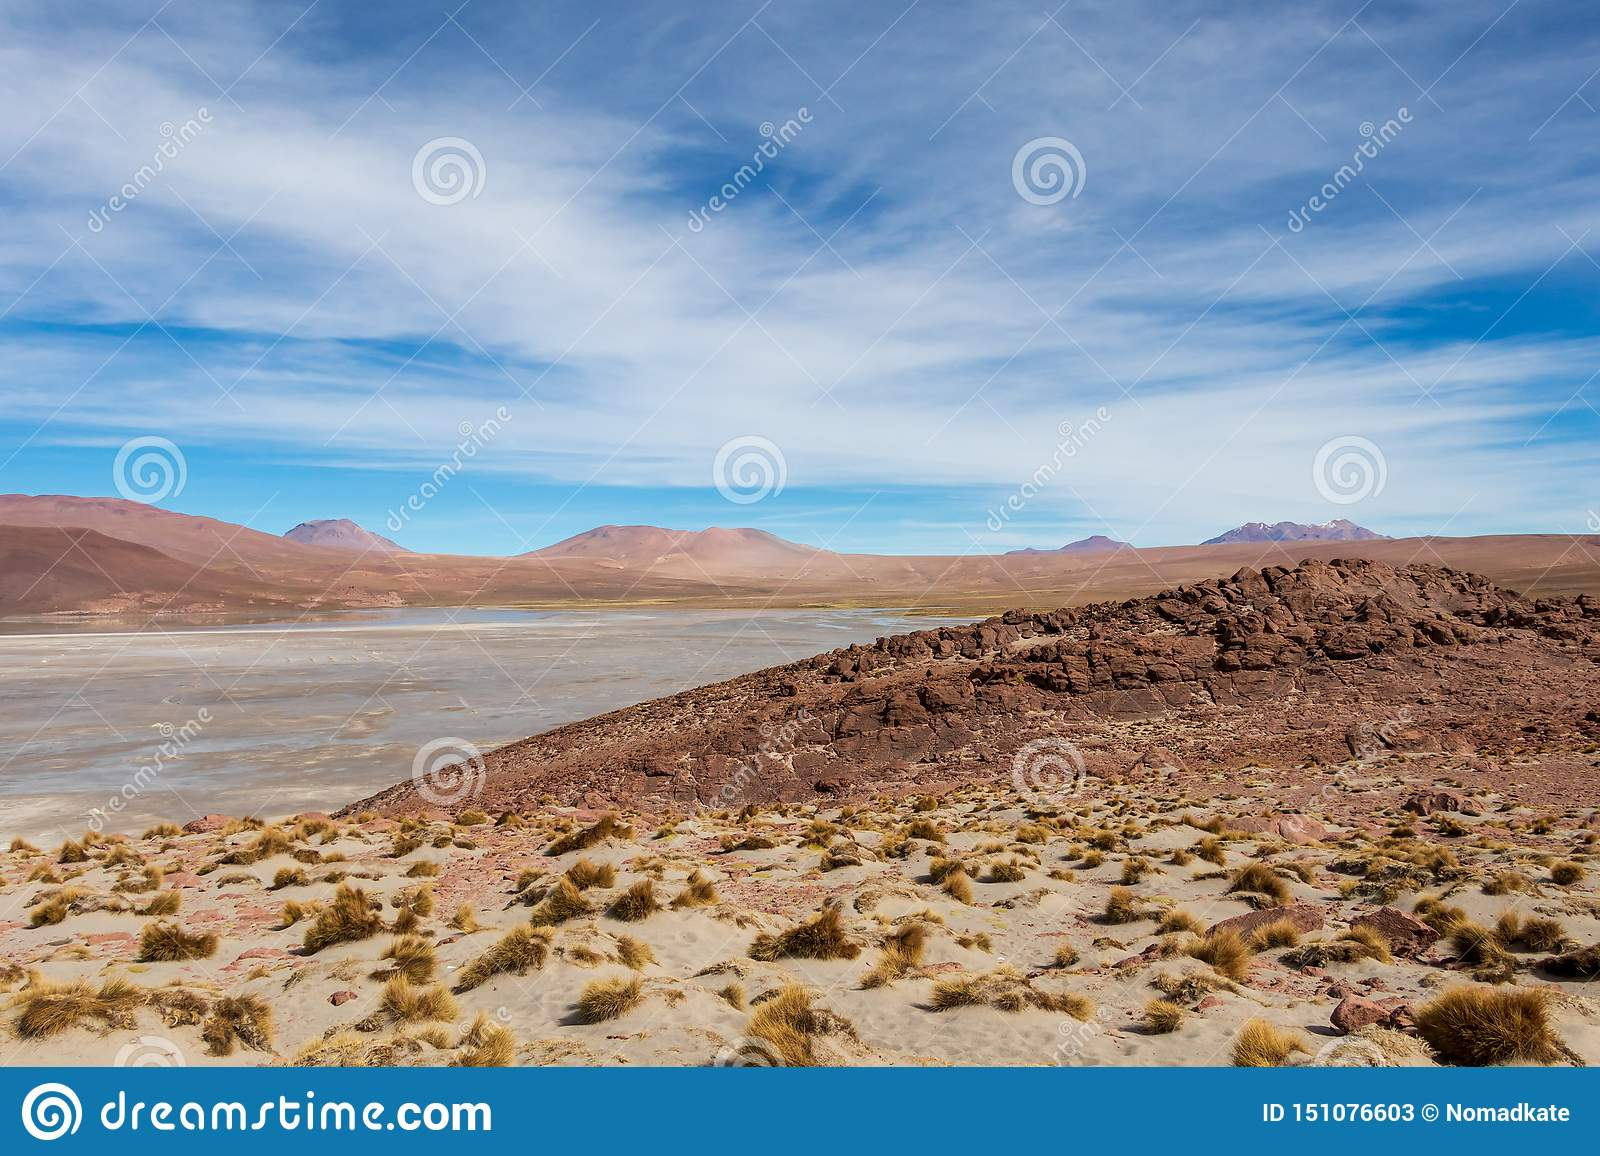 Background with barren desert scenery in the Bolivian Andes, in the Nature reserve Edoardo Avaroa